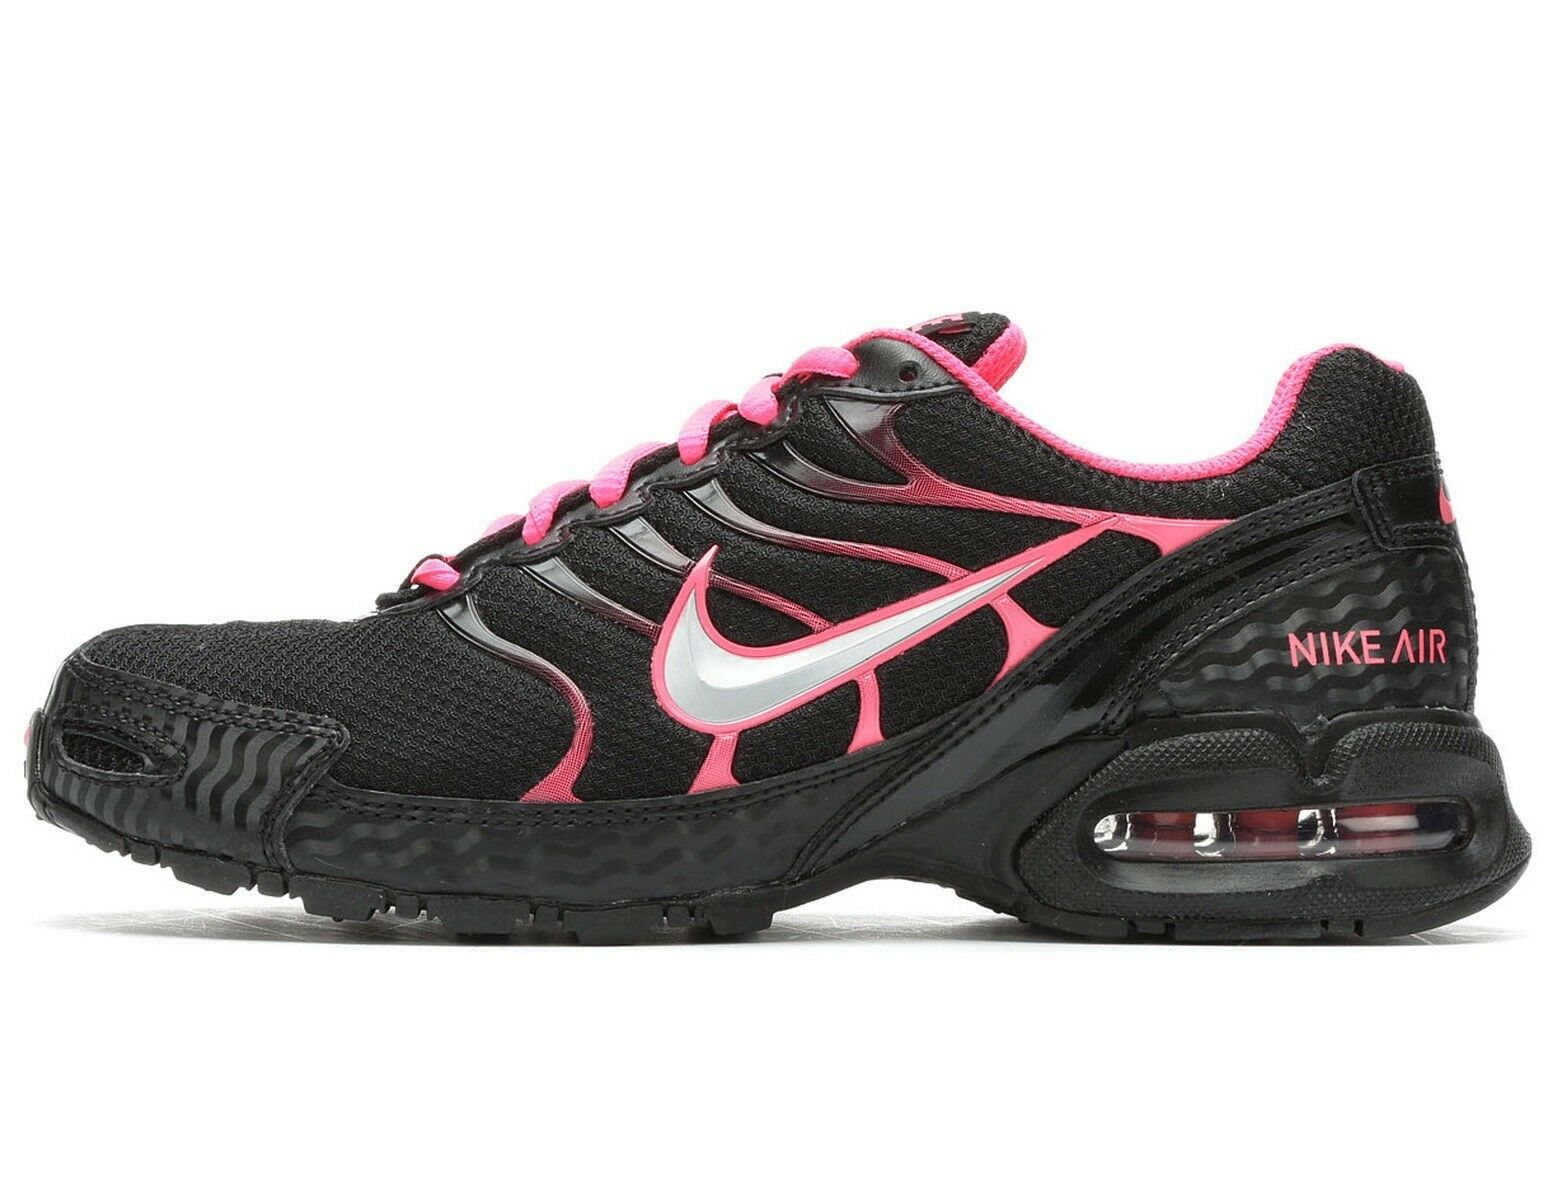 Nike Air Max Torch 4 Womens 343851-006 Black Pink Flash Running shoes Size 8.5